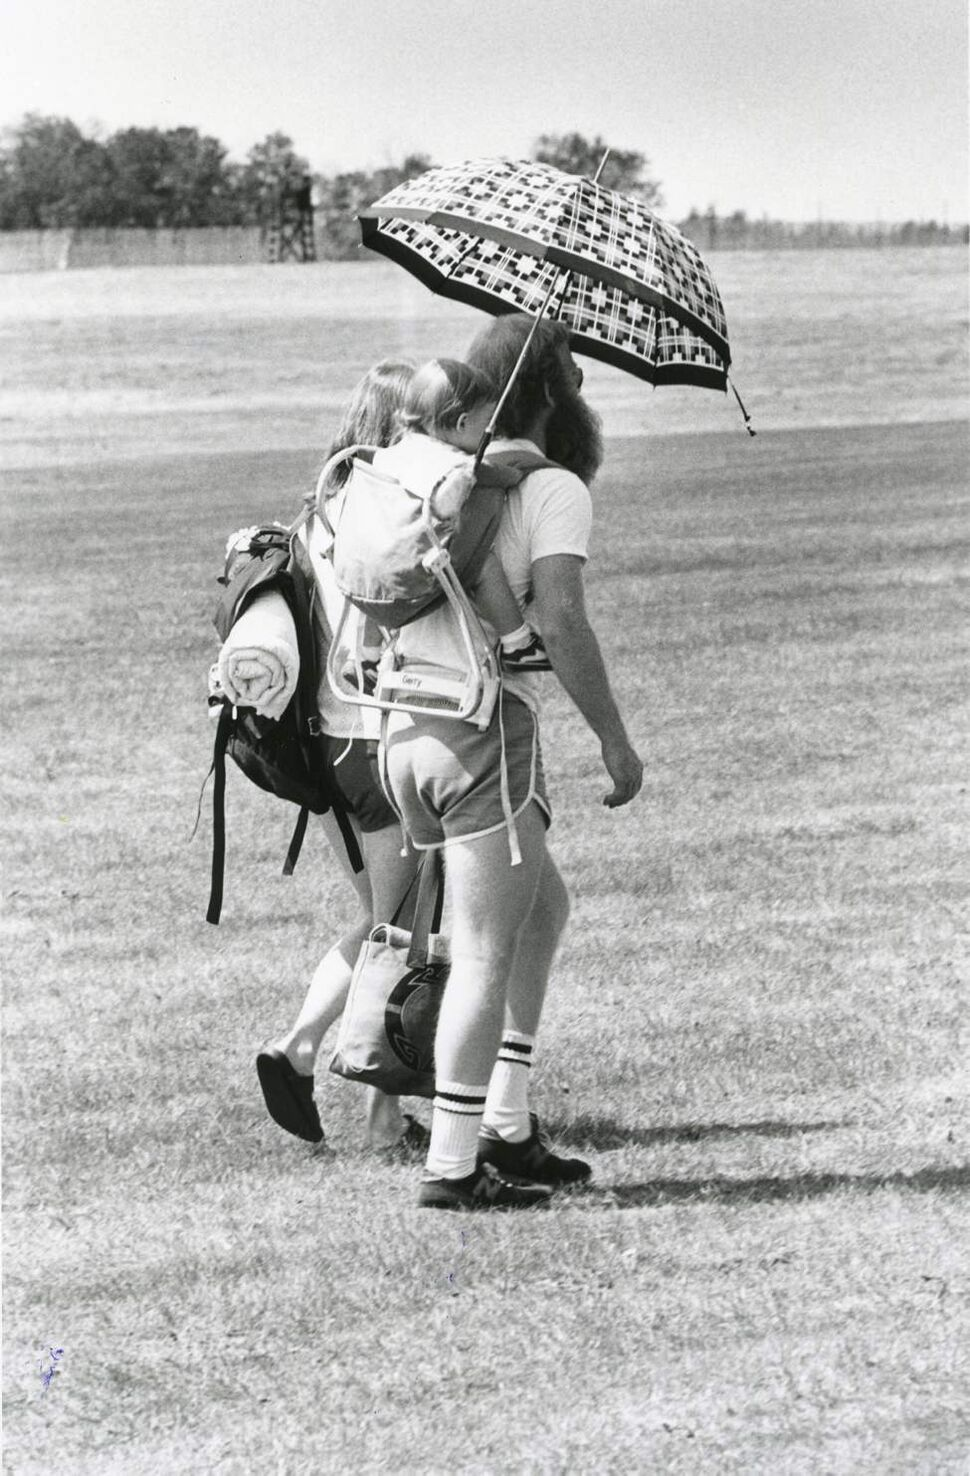 A family attempts to beat the heat on July 12, 1982. (JIM WILEY / WINNIPEG FREE PRESS)